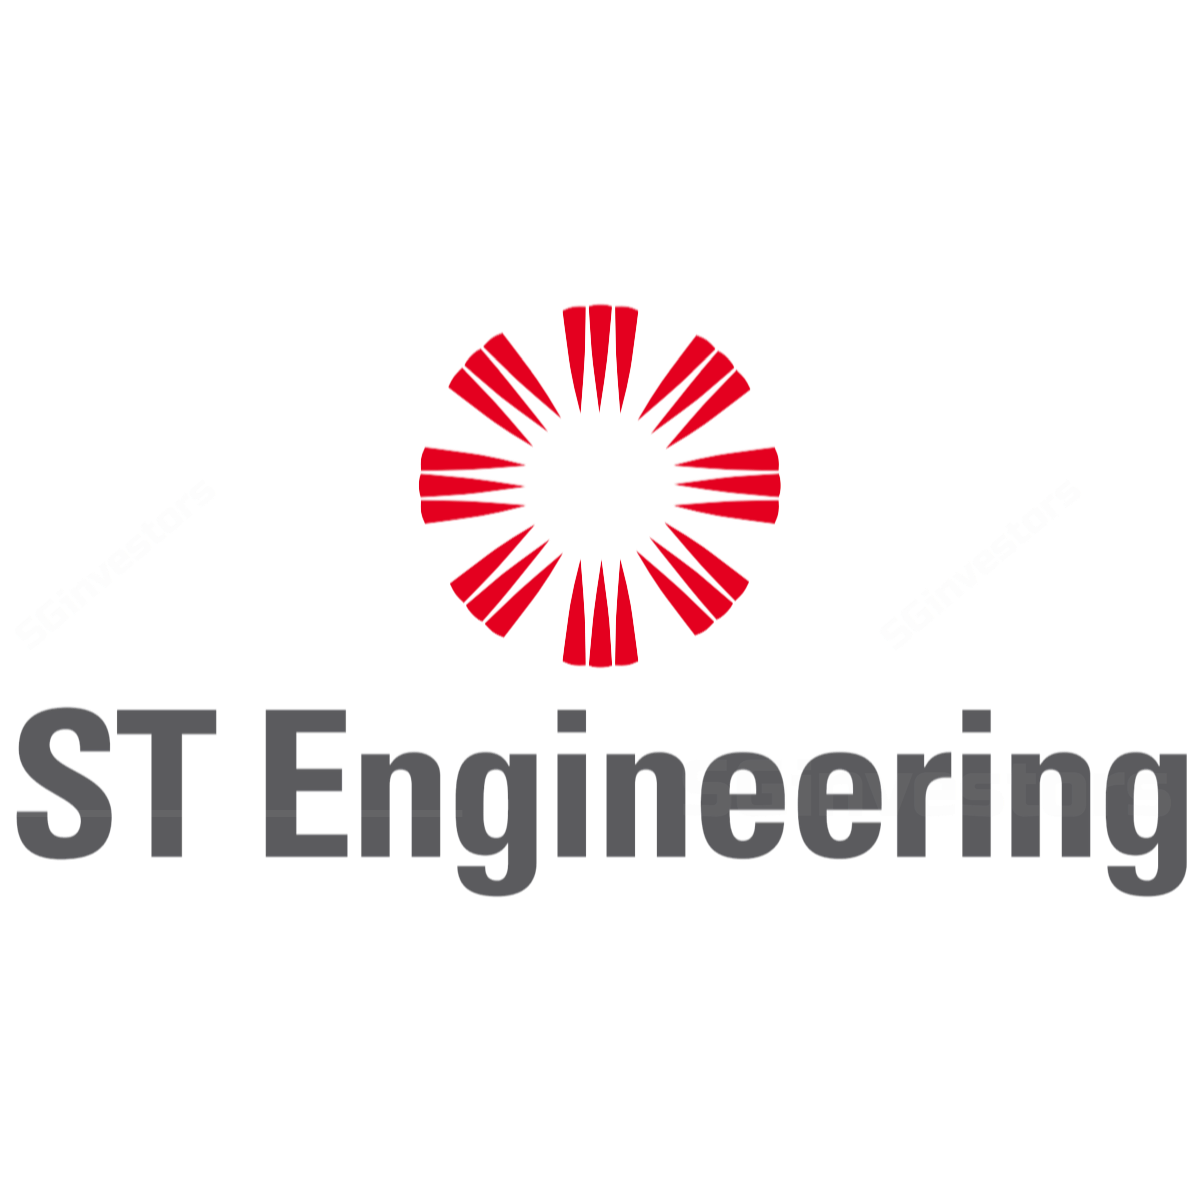 ST Engineering (STE SP) - UOB Kay Hian 2018-02-26: 4Q17: Earnings Aided By Tax Cut; Awaiting Earnings Fruition From New Initiatives; Downgrade To HOLD.